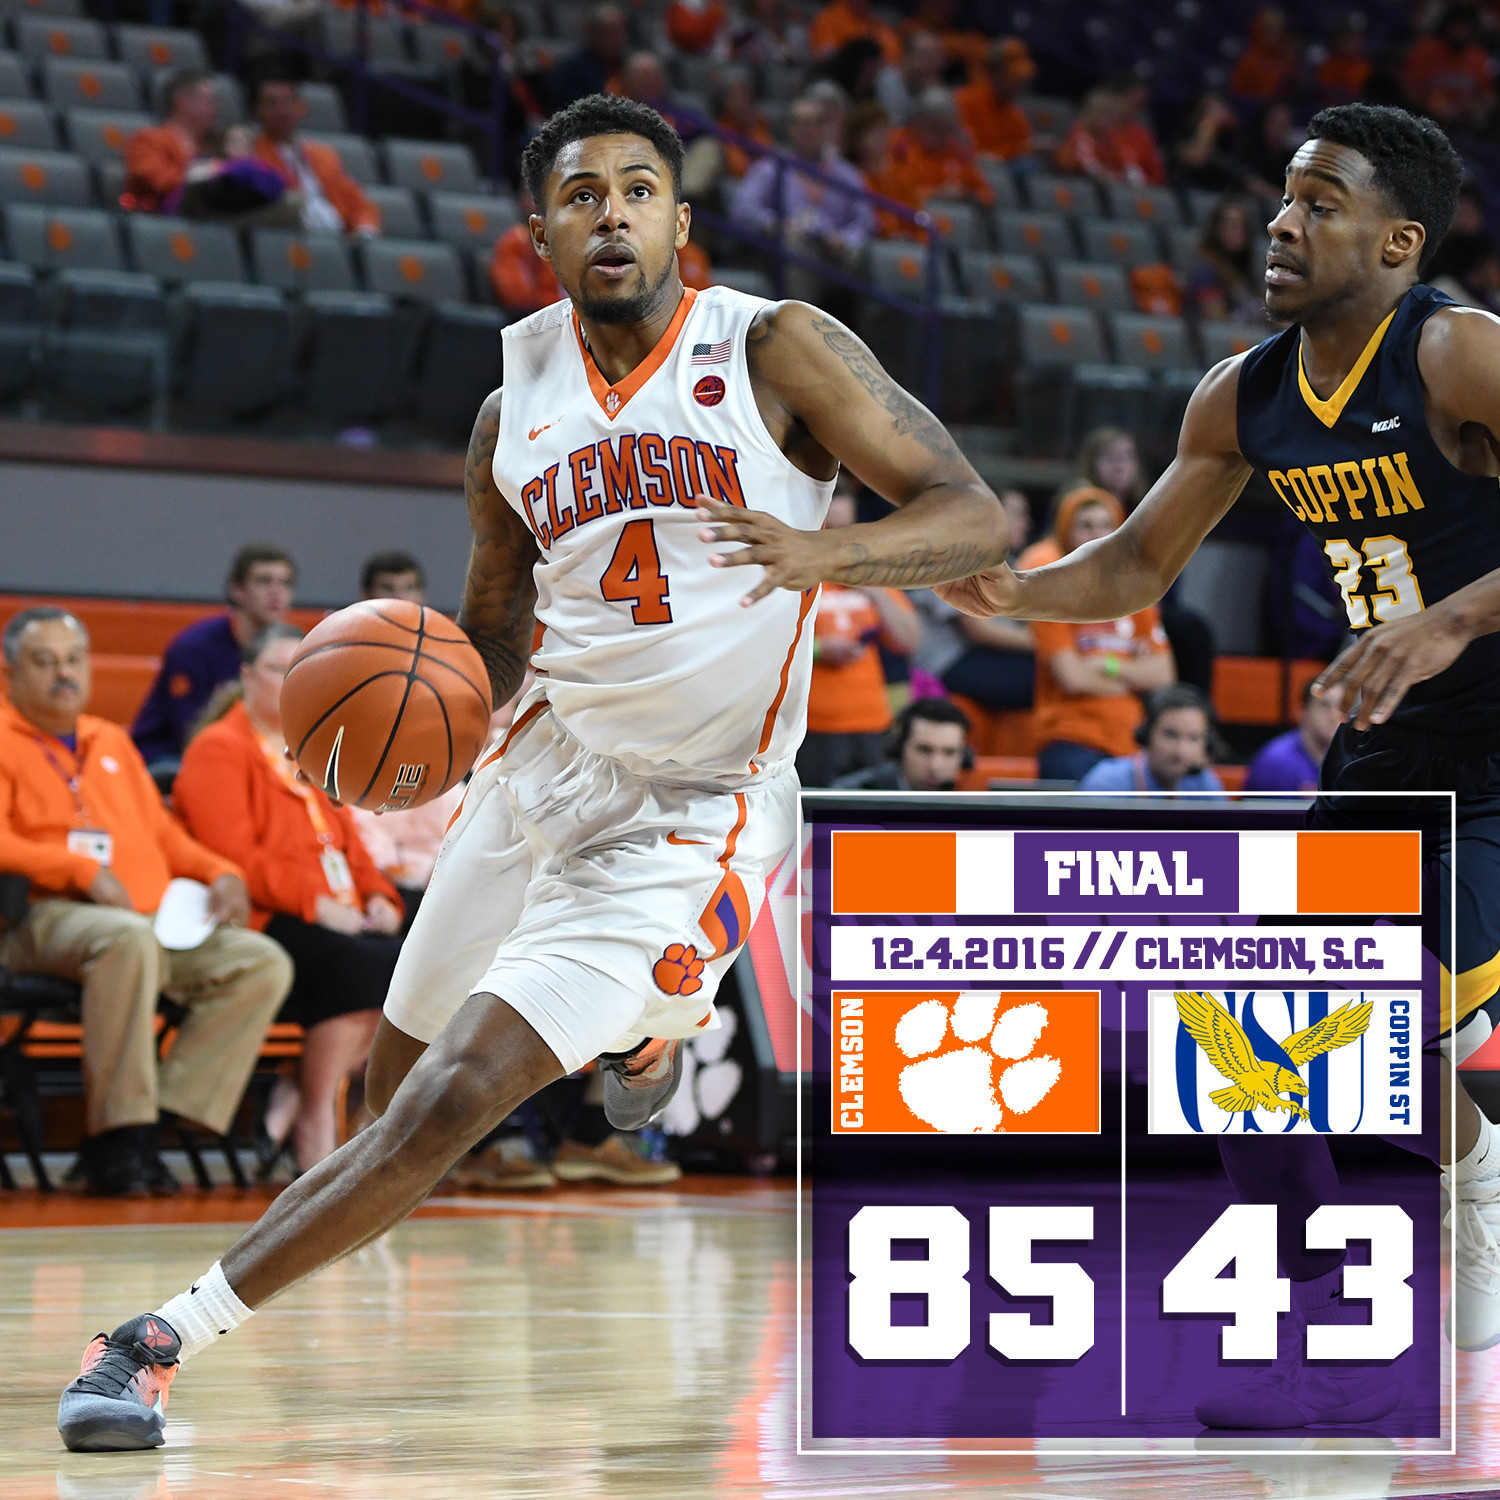 Tigers Blow Past Coppin State, 85-43